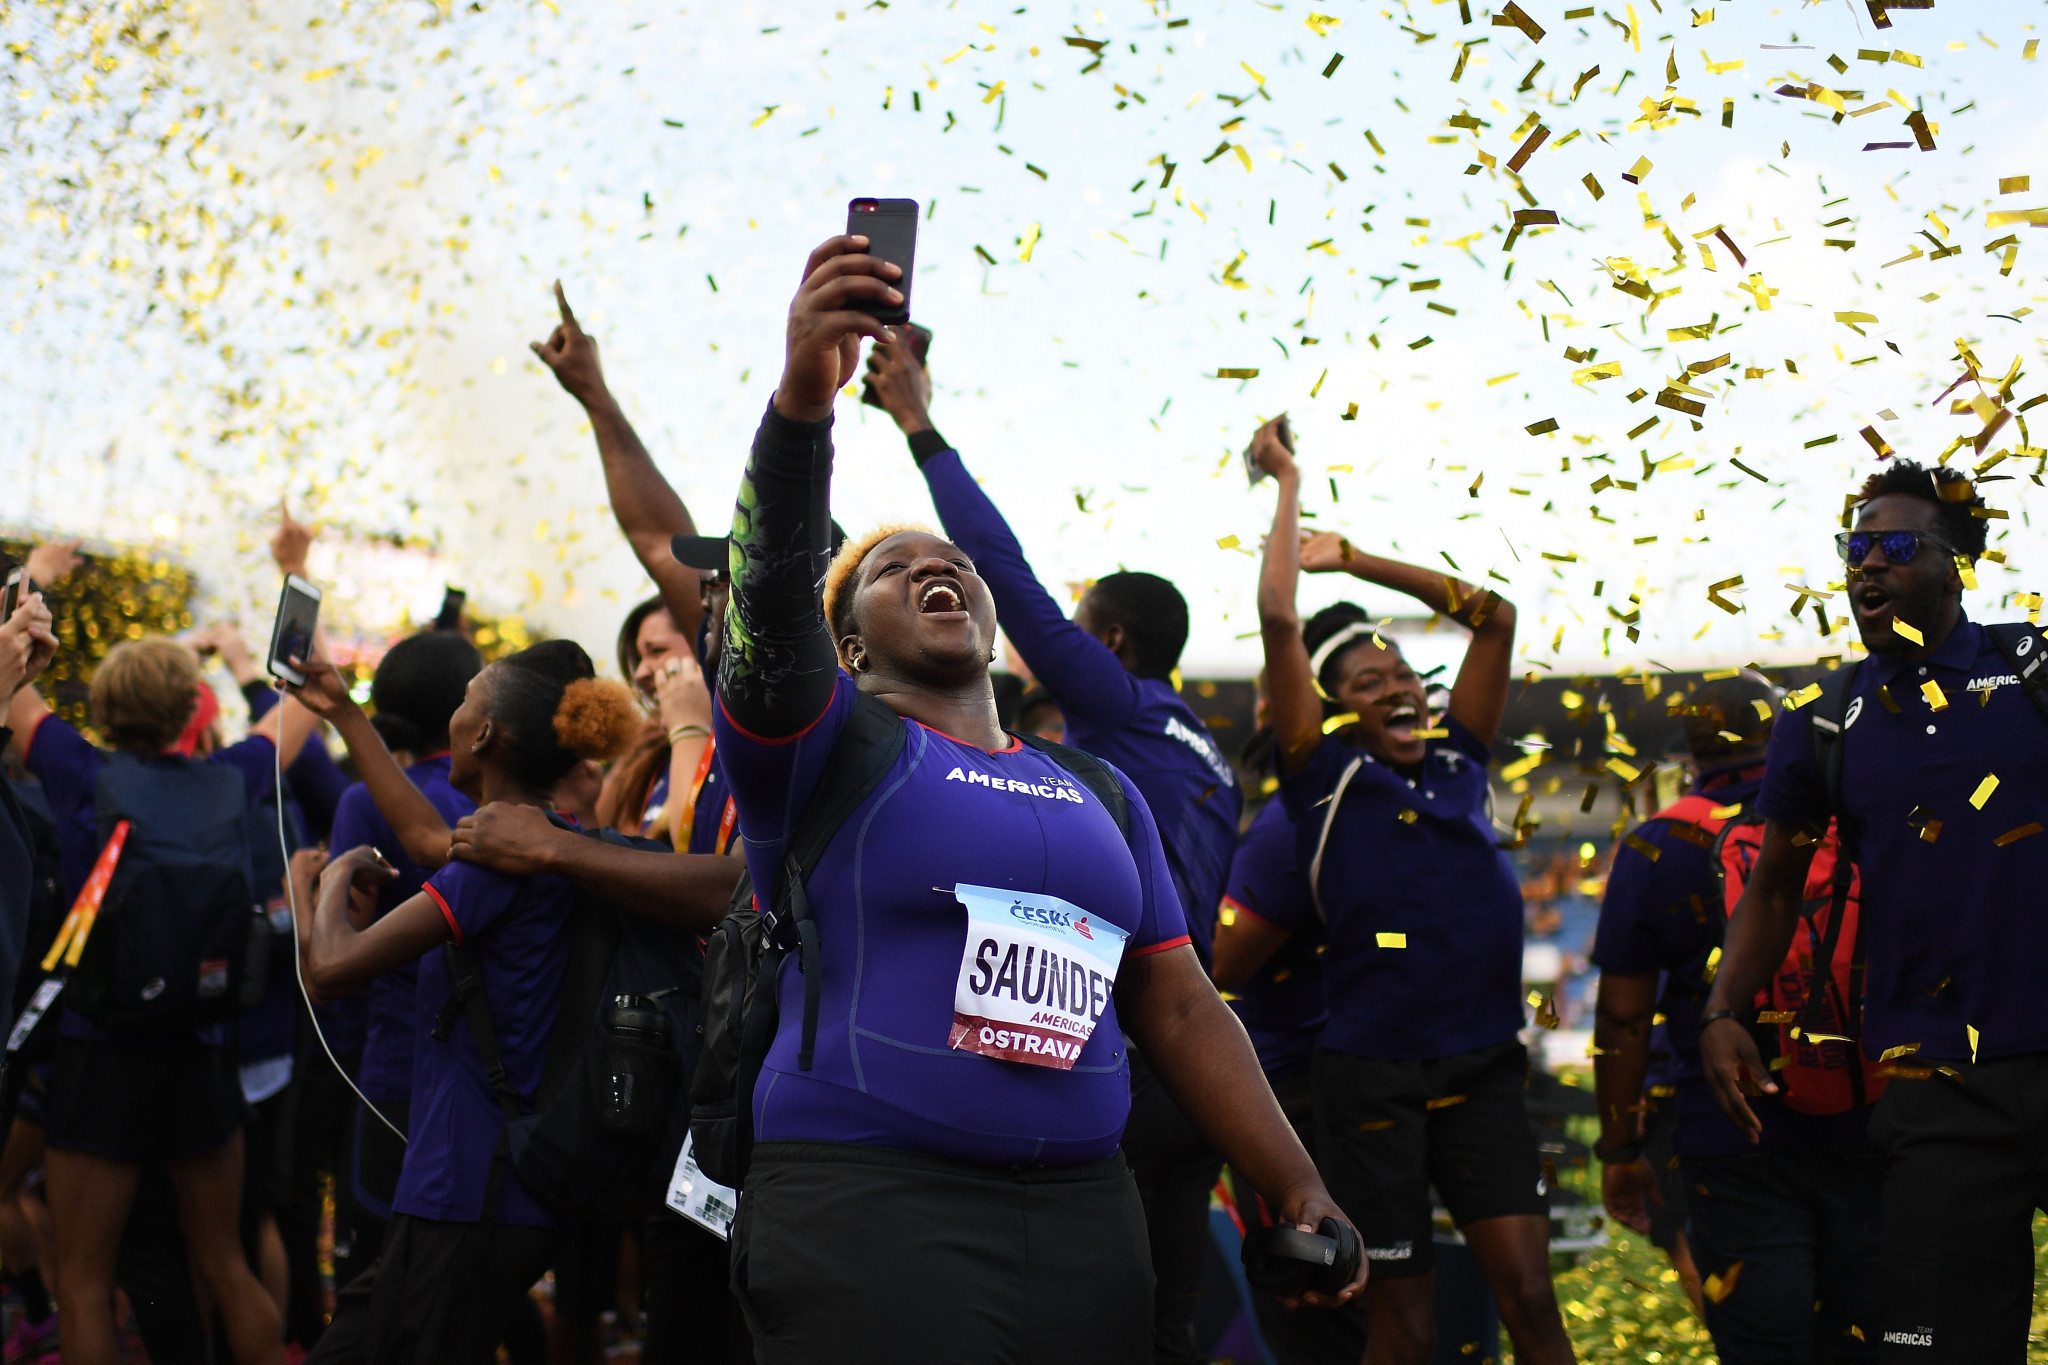 Team Americas celebrate winning the IAAF Continental Cup ©Getty Images